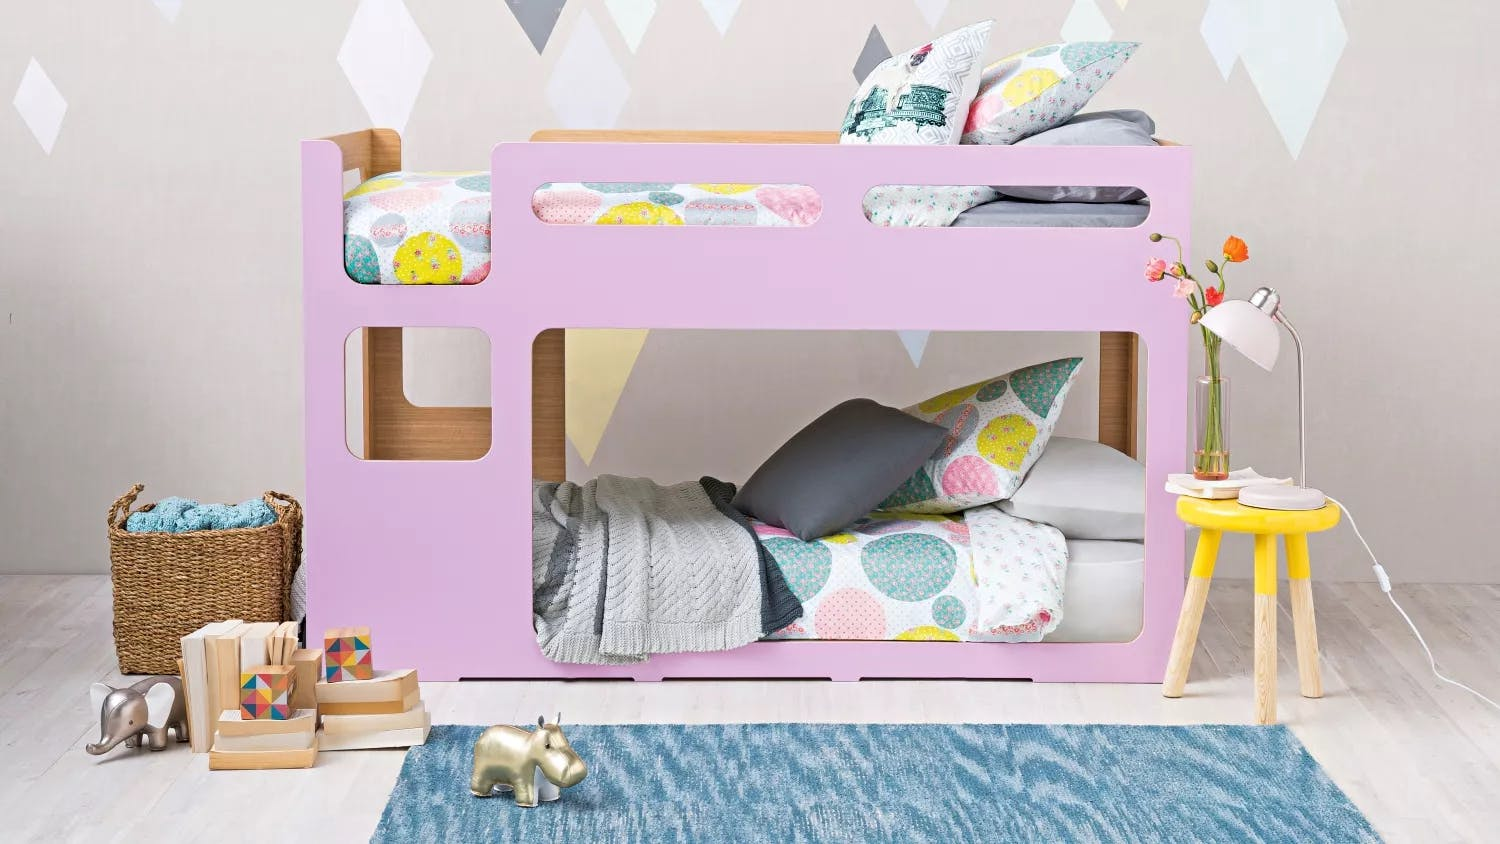 My place bunk bed lilac domayne for Cool beds for tweens